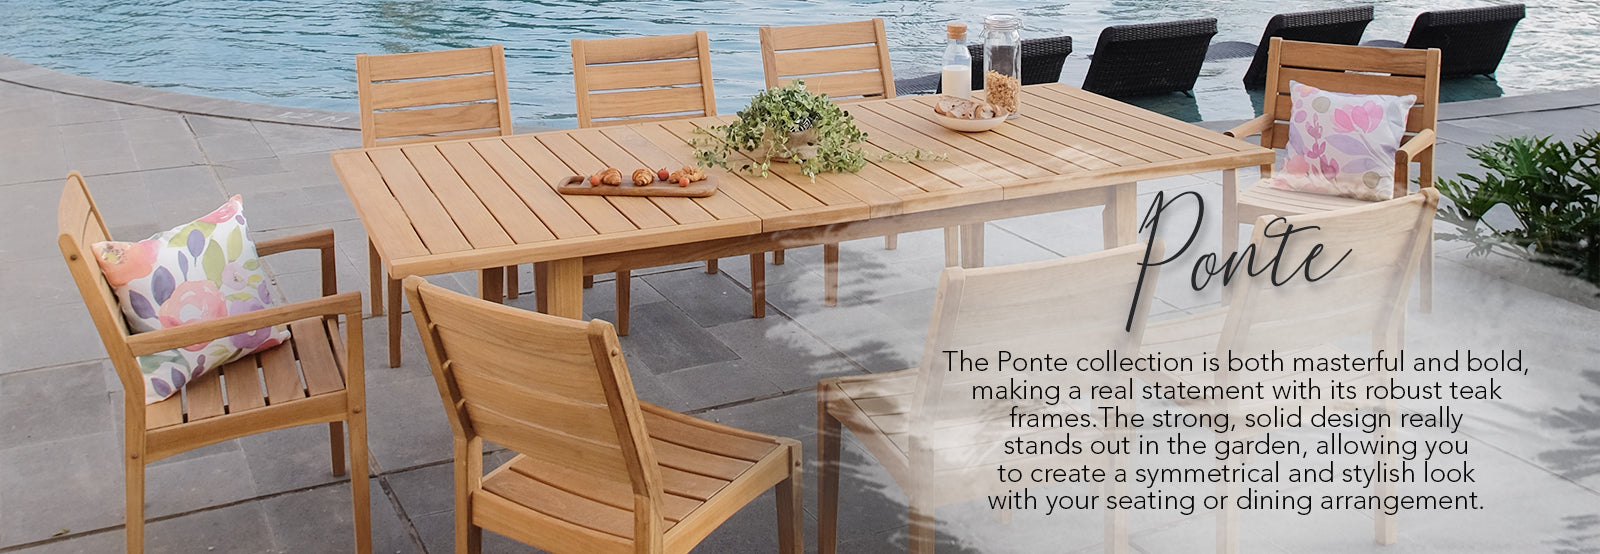 Explore the full Ponte outdoor furniture range, with its stunning, bold design and robust construction, at Cambridge Casual